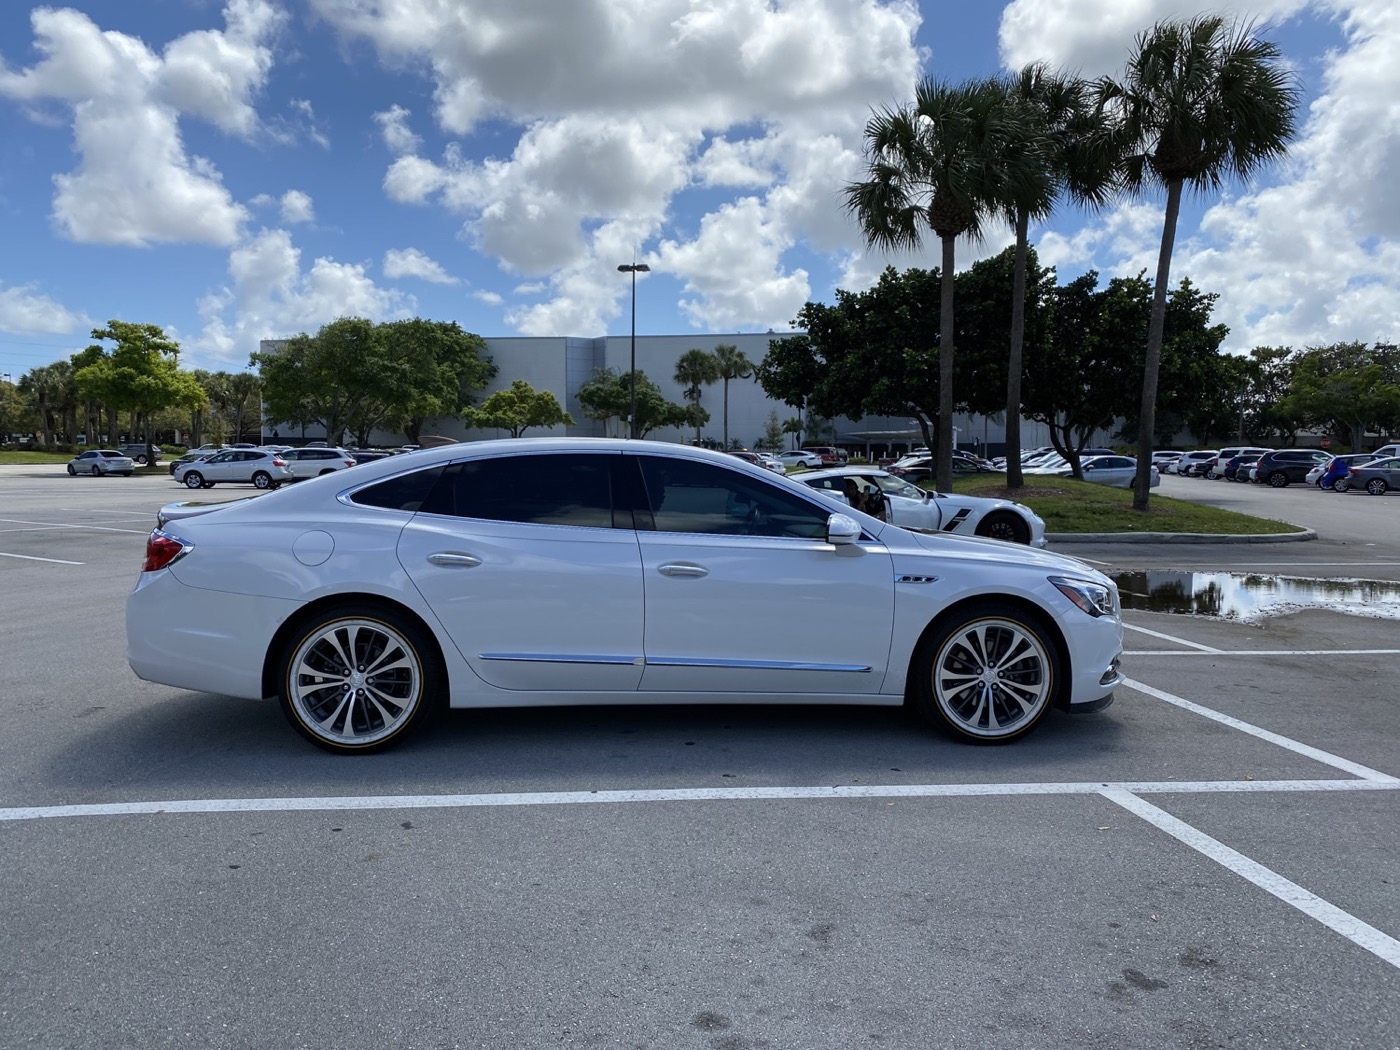 Check Out This Special 2018 Buick Lacrosse | Gm Authority New 2022 Buick Verano Interior, Rims, Custom